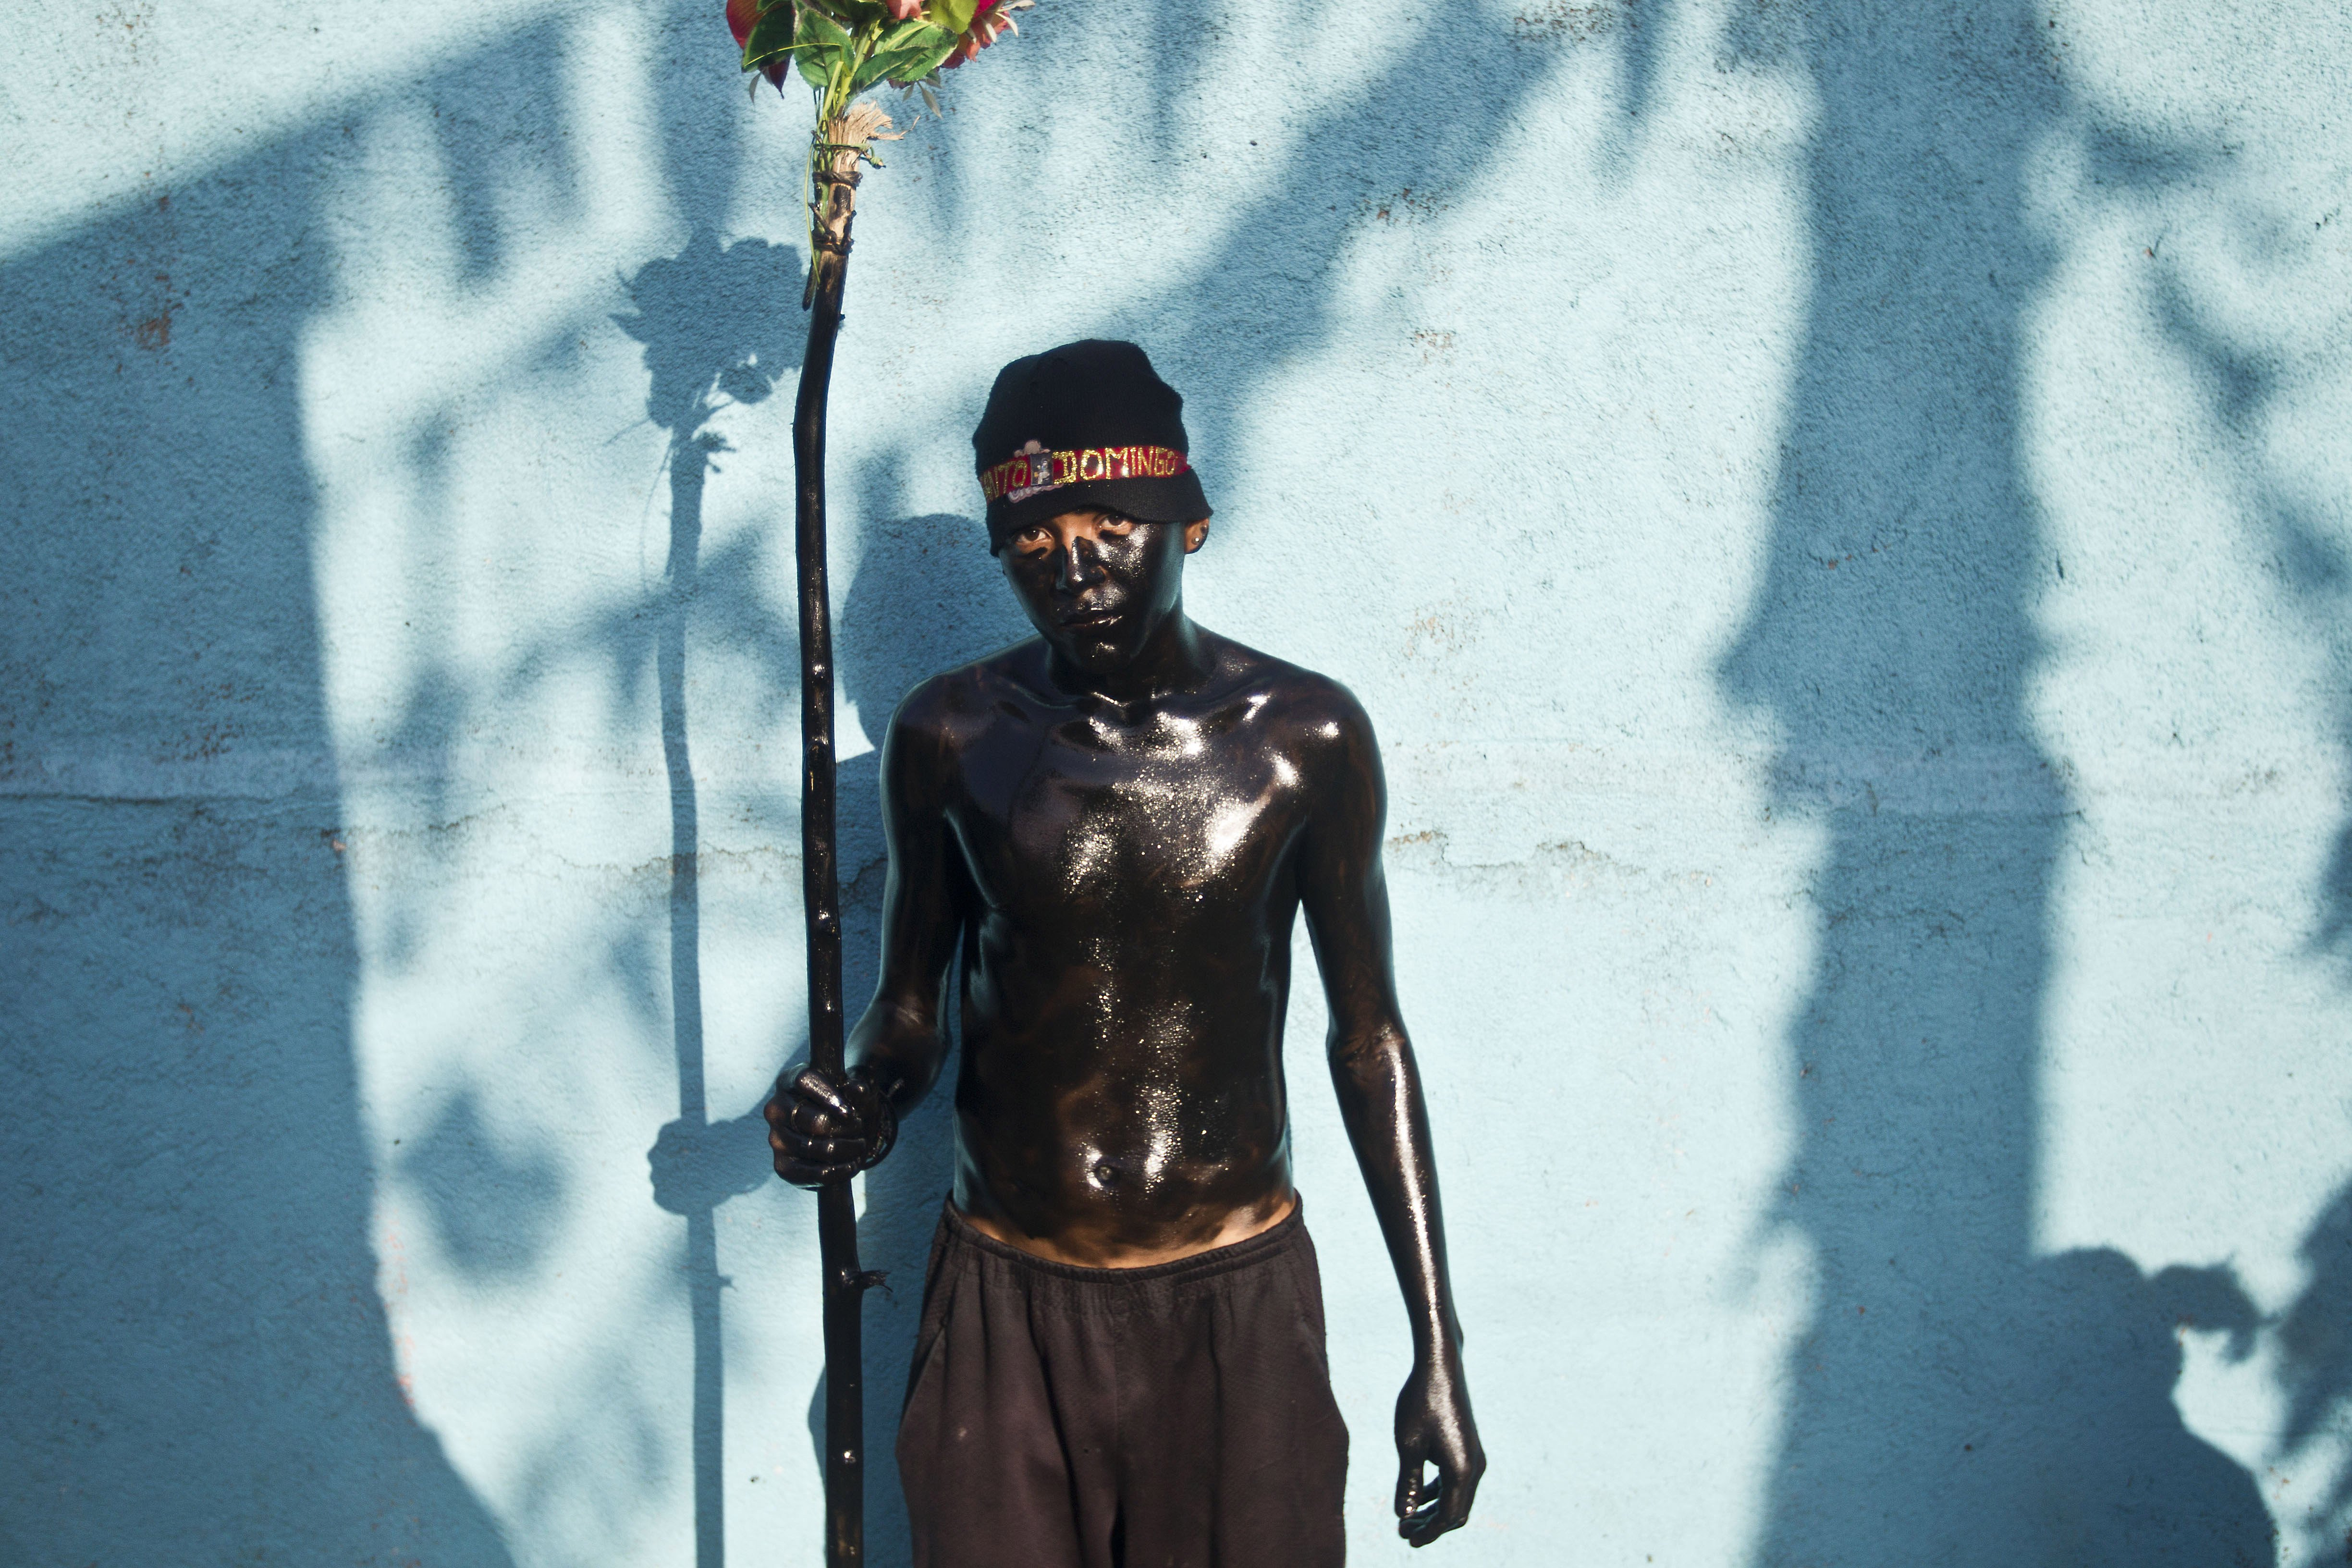 Aug. 1, 2014. A young man, his body drenched with used motor oil, poses for a photo during festivities honoring patron saint Santo Domingo de Guzman, in Managua, Nicaragua.